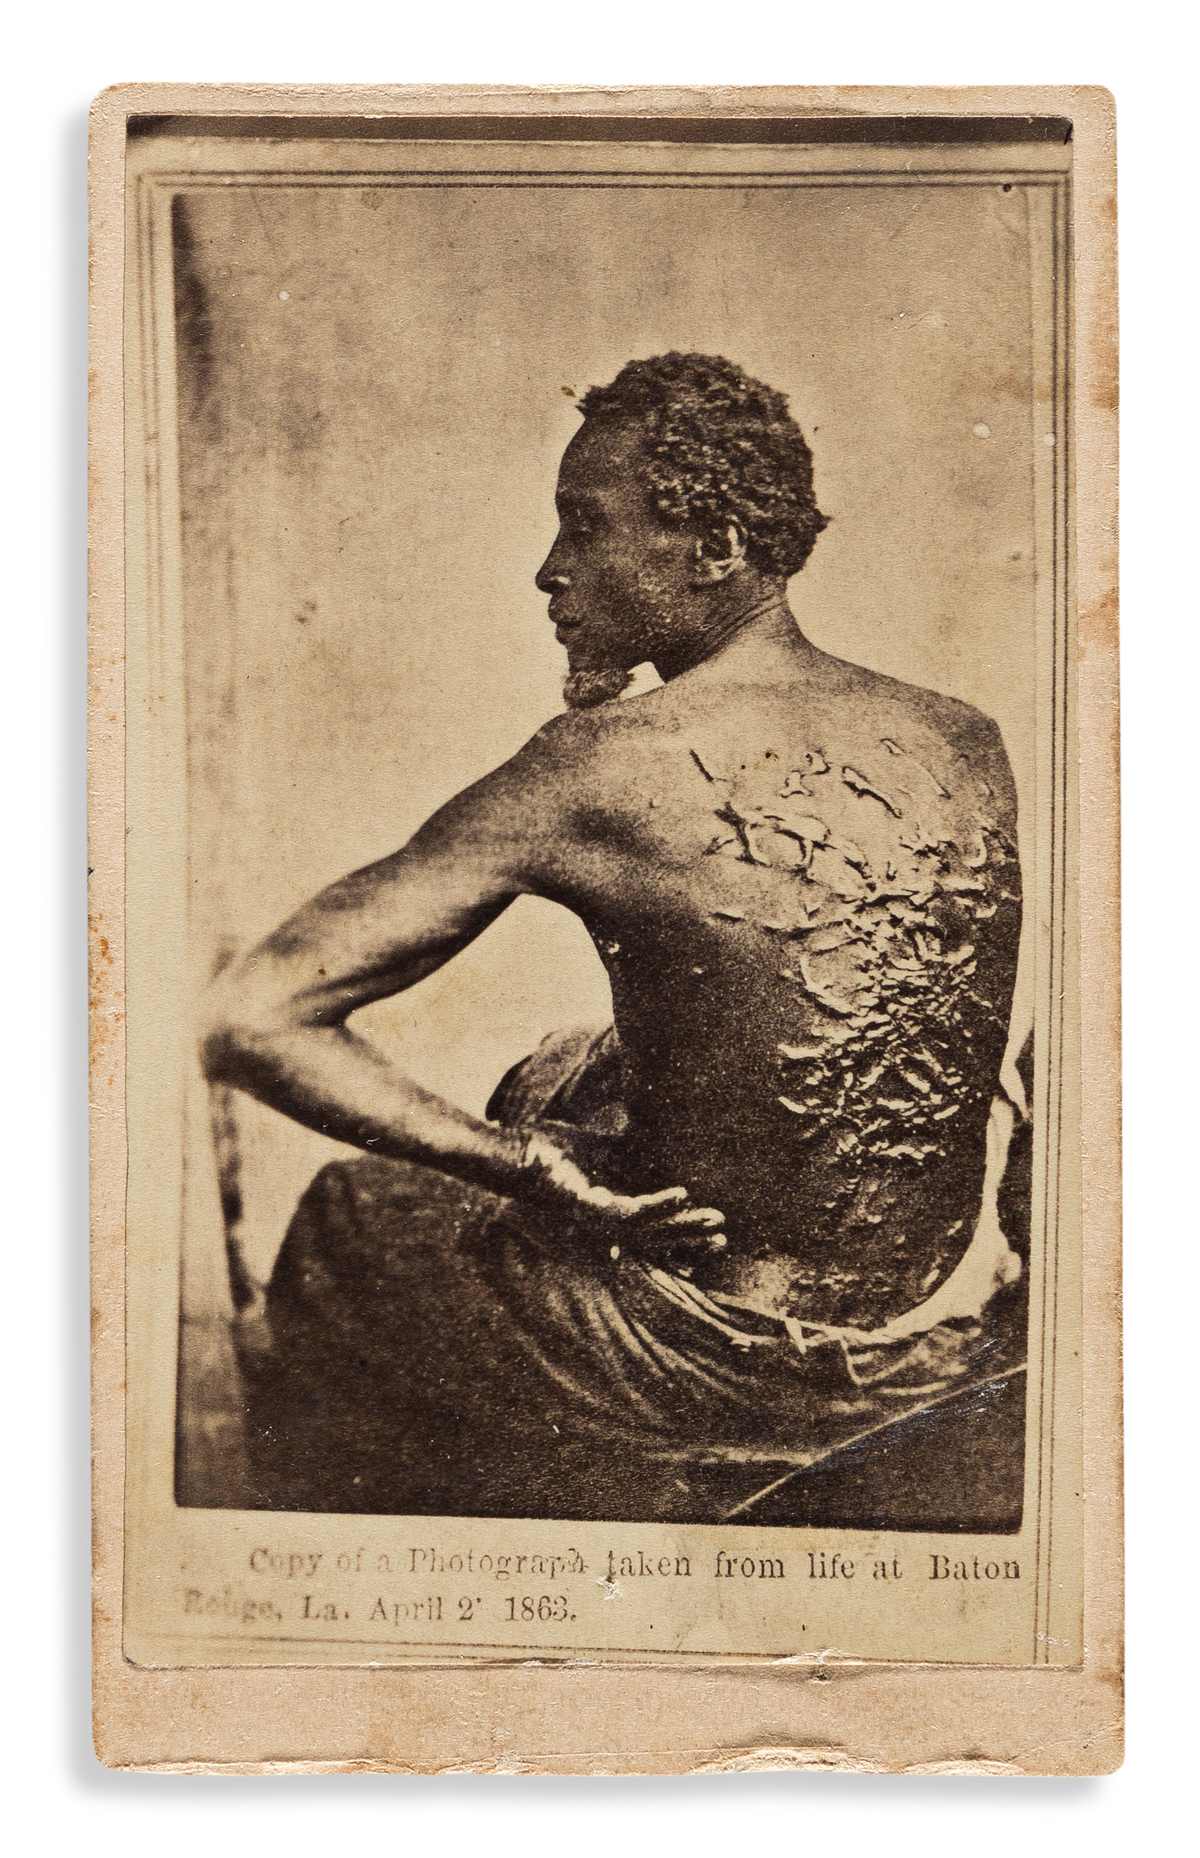 (SLAVERY AND ABOLITION.) [McPherson & Oliver; photographers.] [The Scourged Back.]